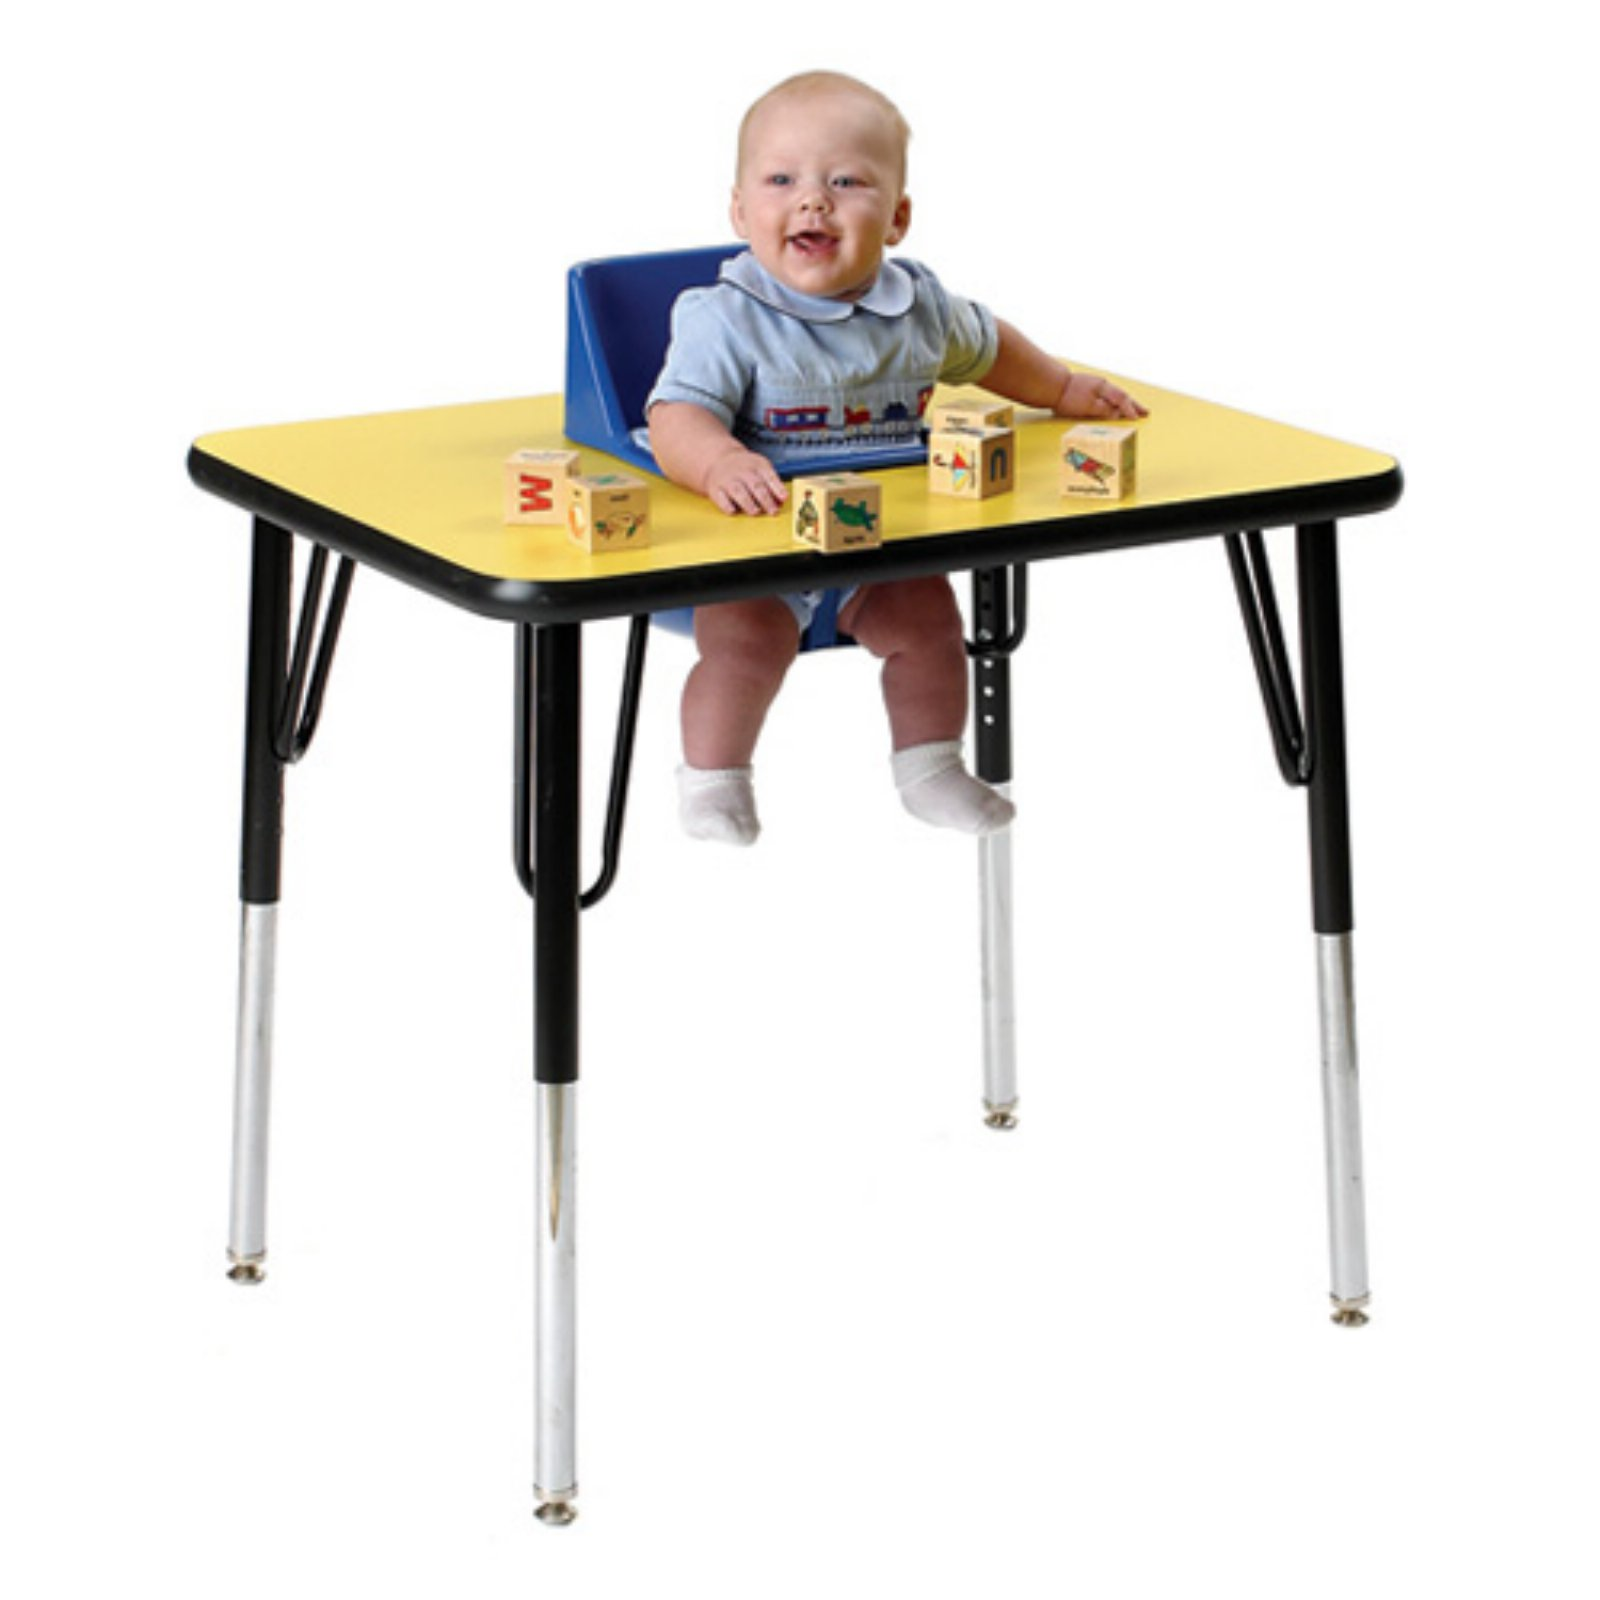 1 Seat Toddler Activity Table